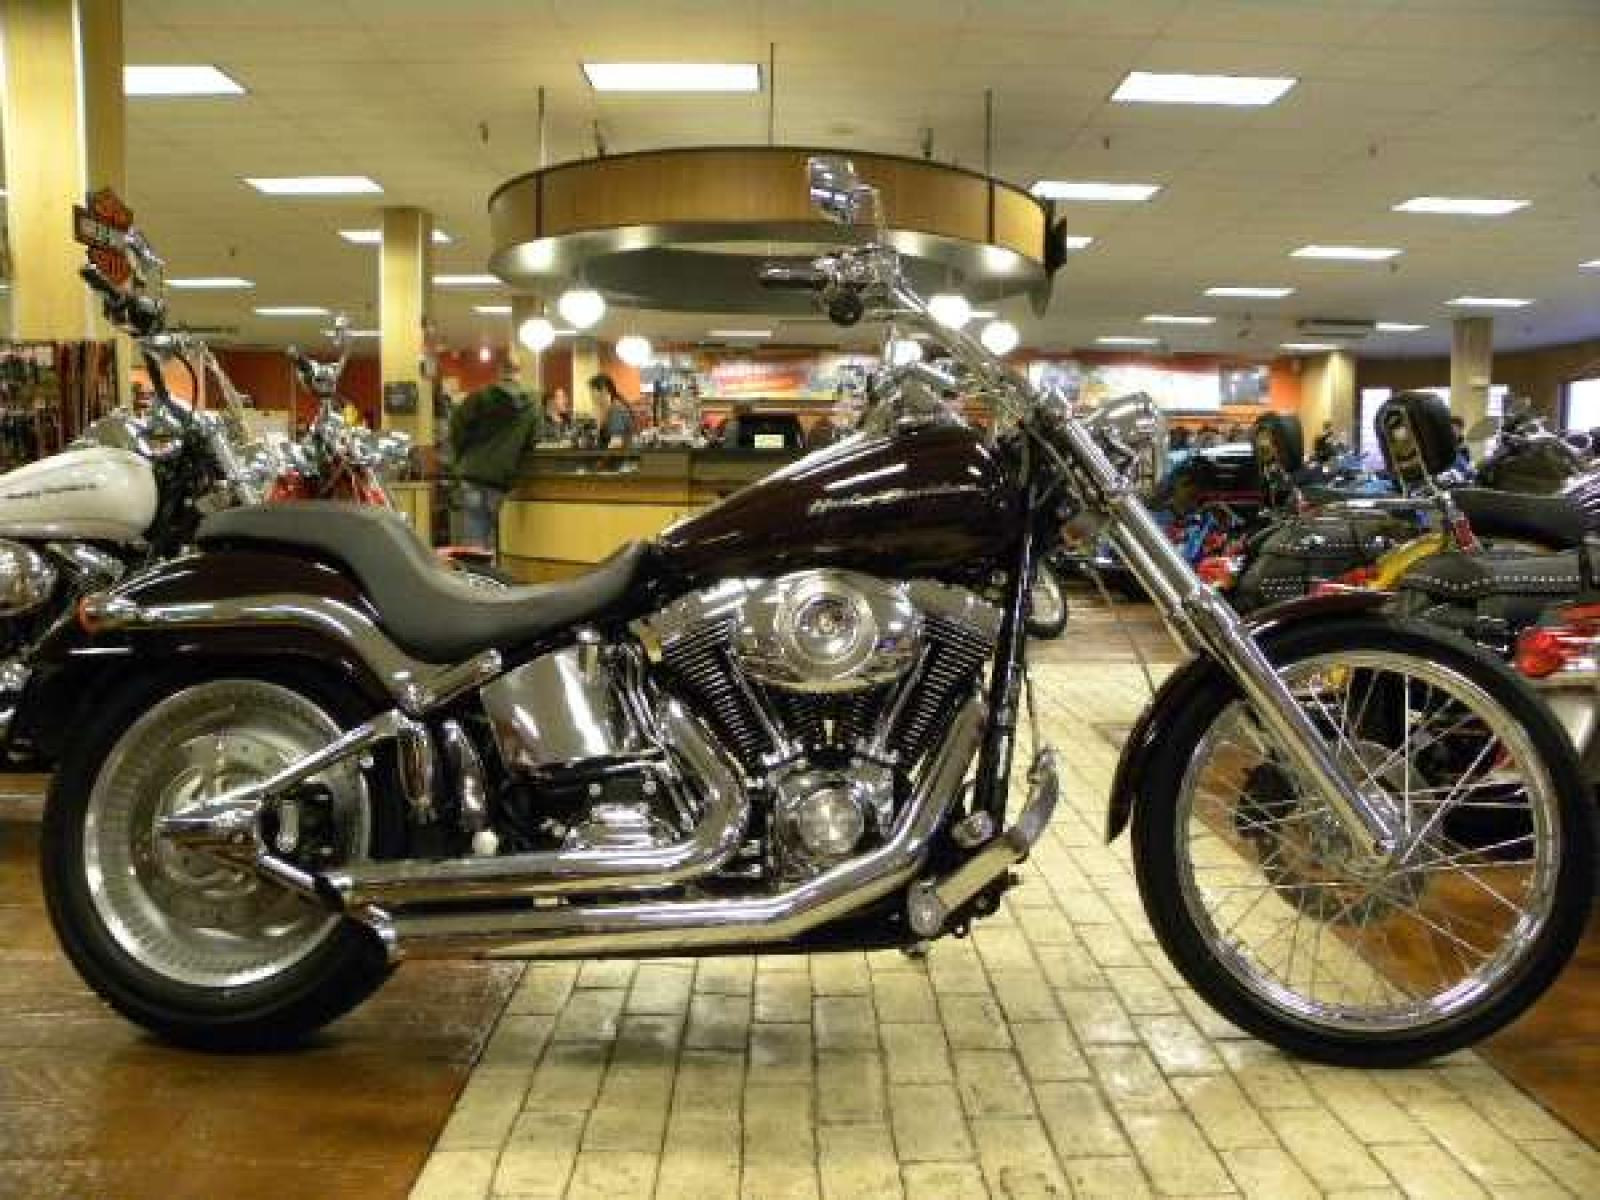 D First Year Softail Fxst Fxst furthermore O also Deucecustomseat as well Maxresdefault furthermore S P I W. on harley davidson fxstd